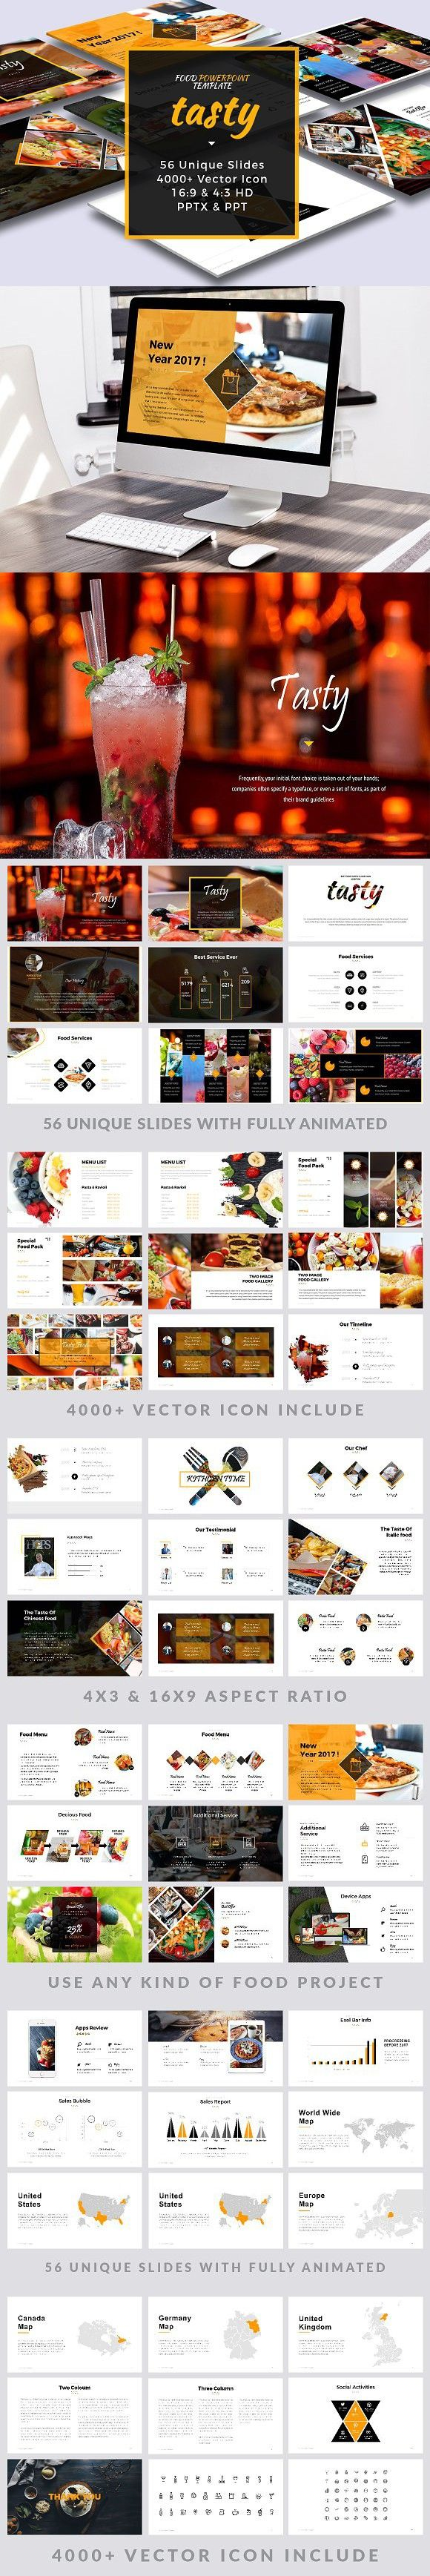 Food Infographic Tasty Food Powerpoint Template Infographic Templates 14 00 Infographicnow Com Your Number One Source For Daily Infographics Visual Creativity